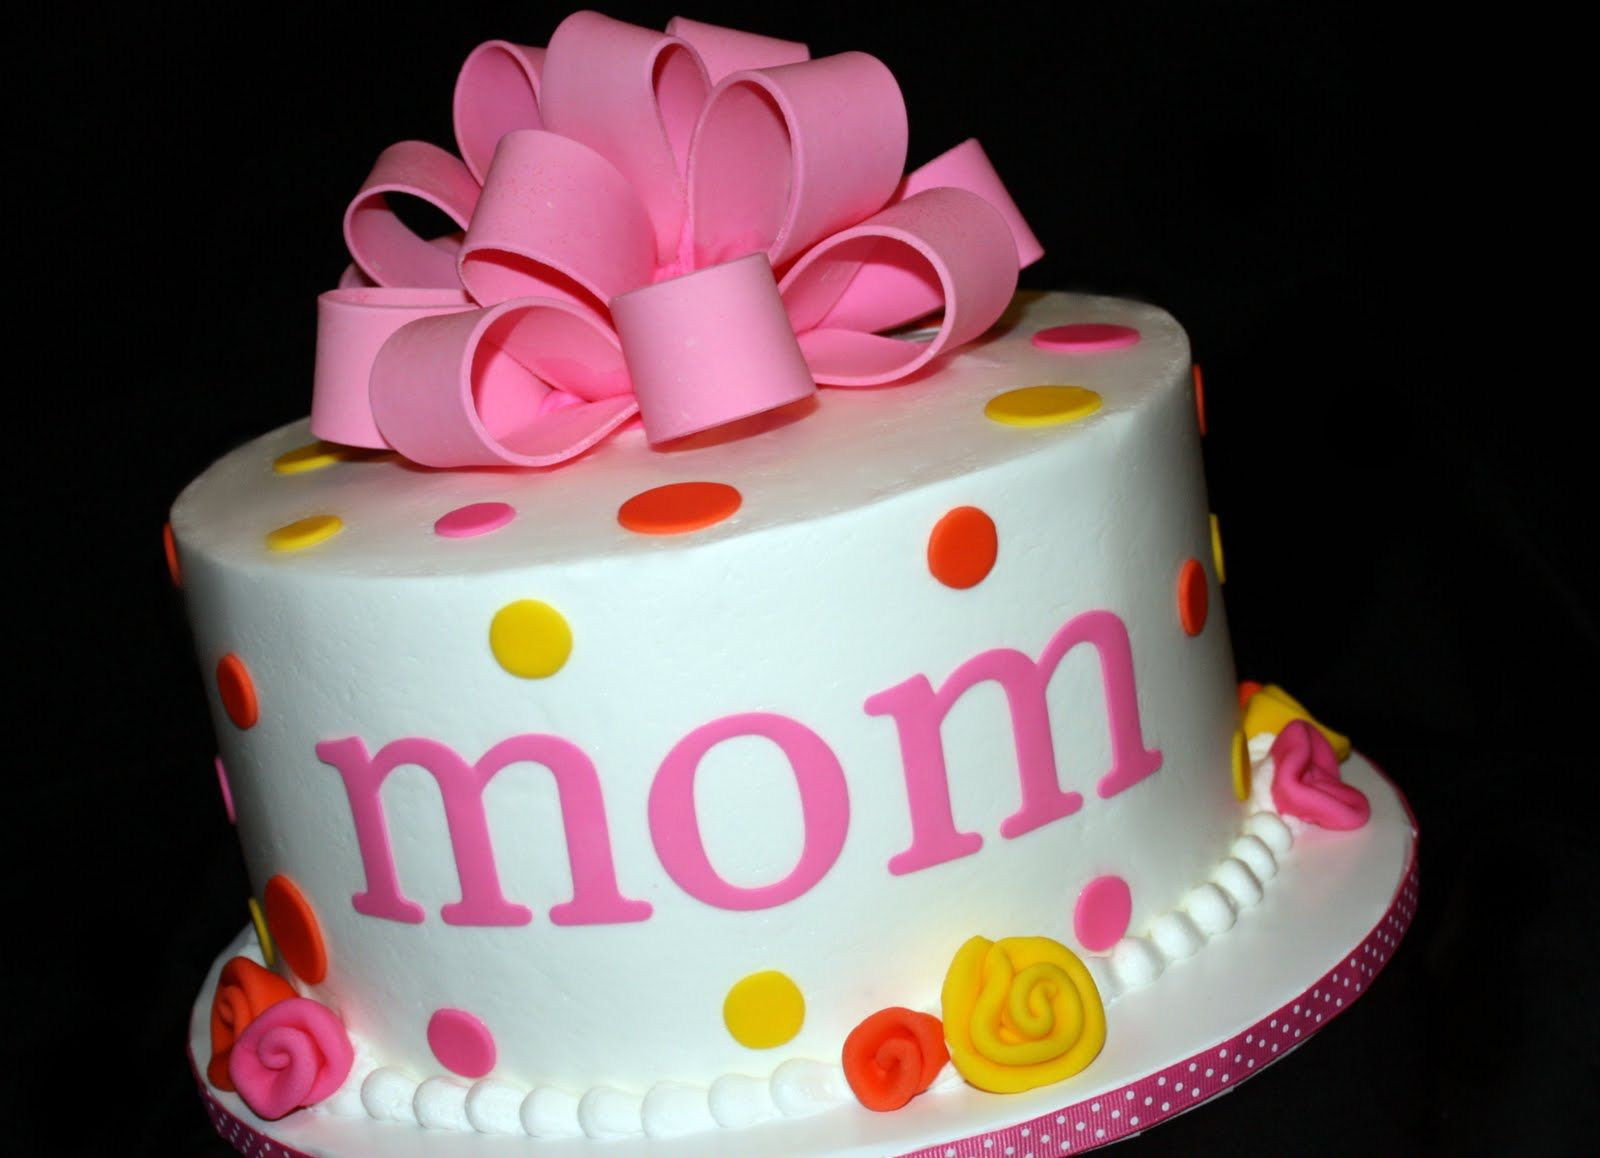 Cake Design For Mothers : fun cakes Mom Birthday Cake fun cakes Pinterest ...